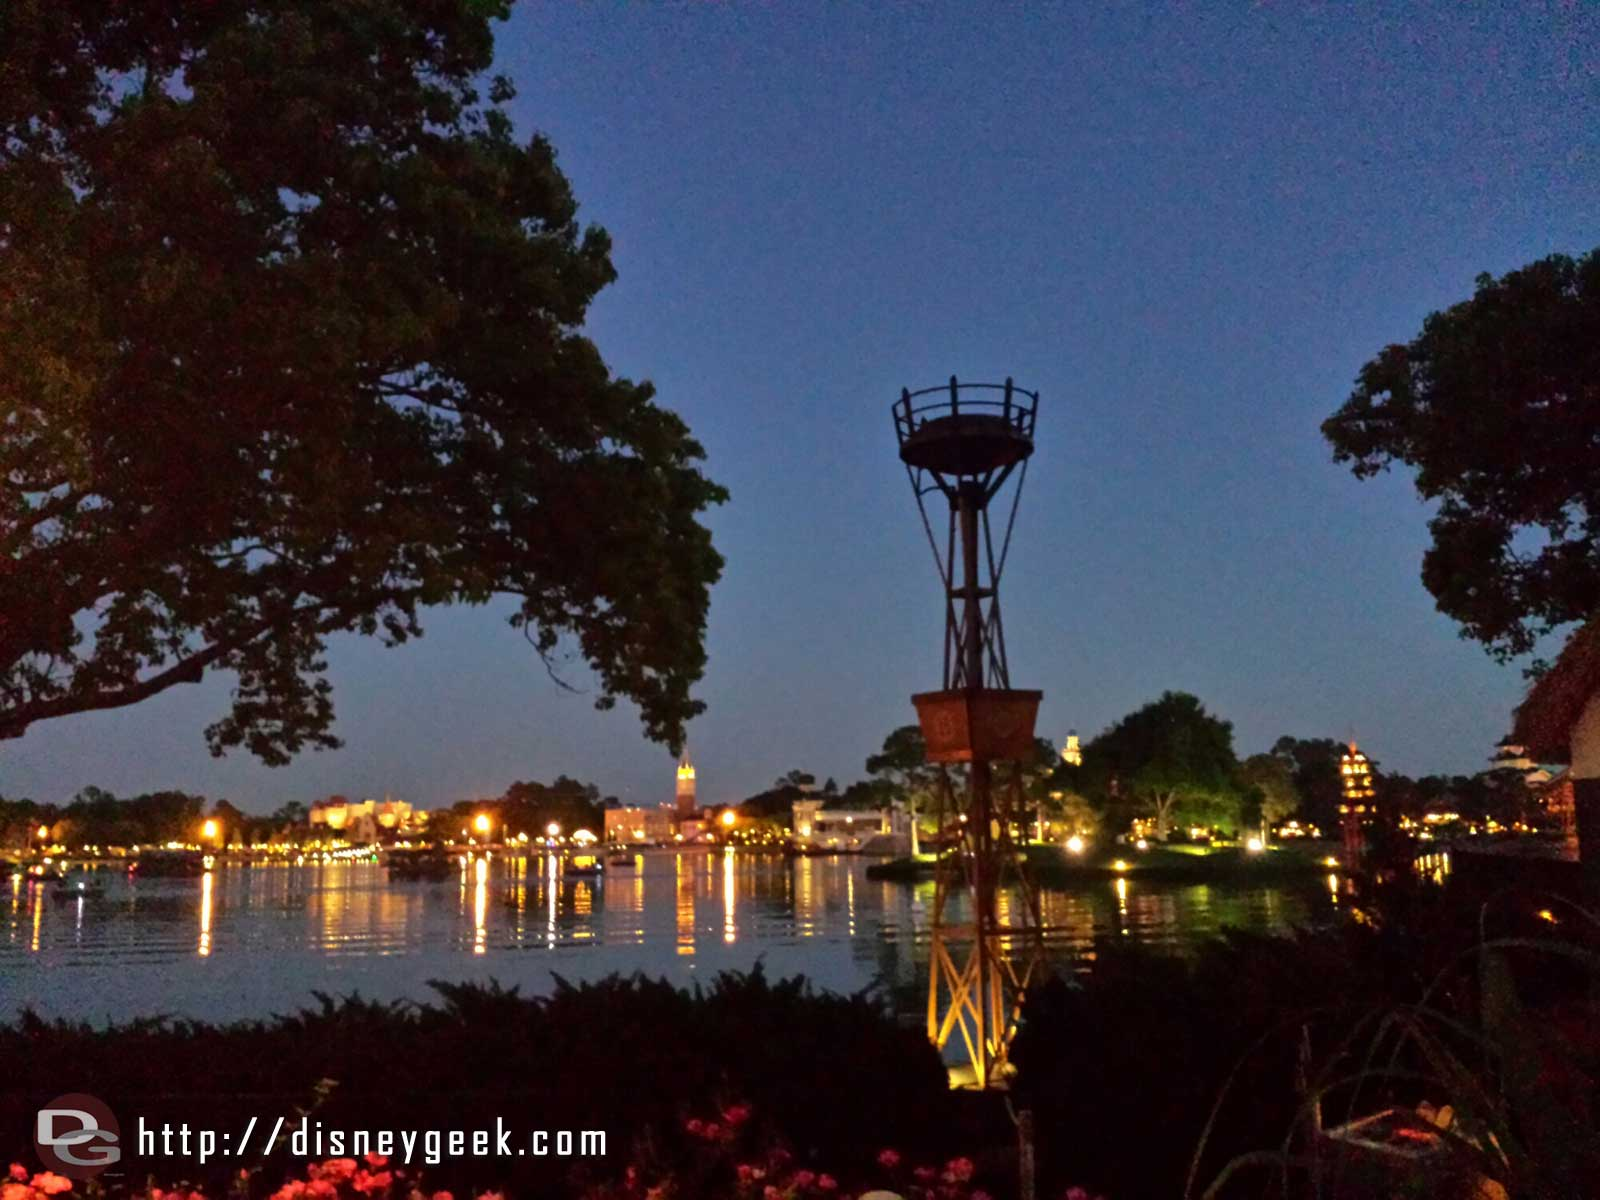 World Showcase Lagoon #Epcot … of course the torch I stop by for the lighting did not light